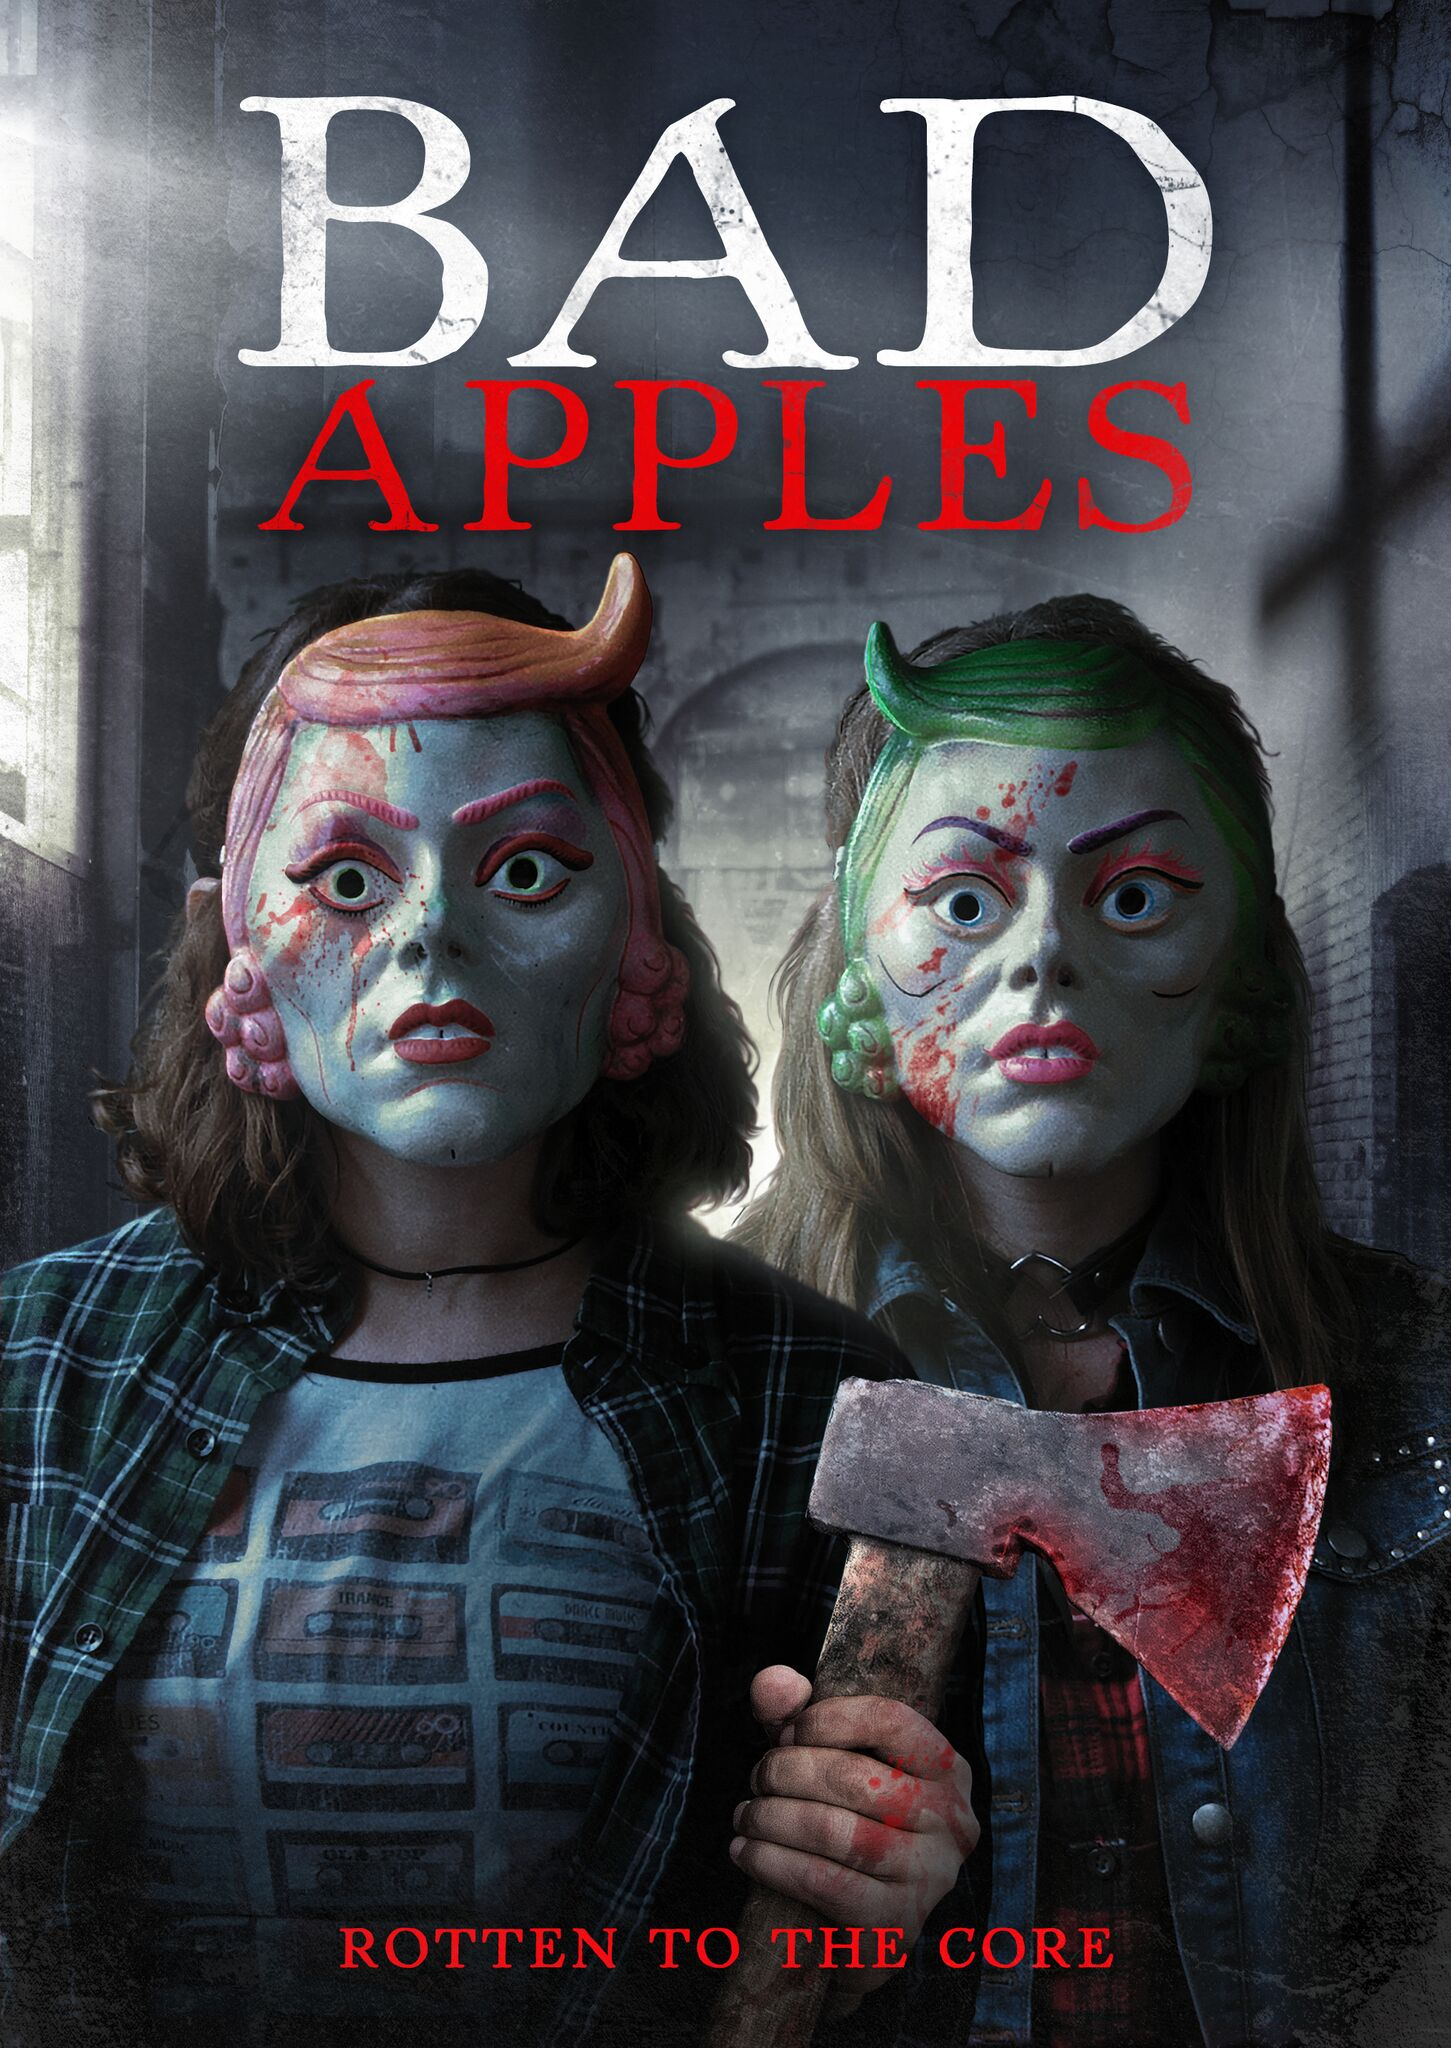 Bad Apples film review: Twins of evil go on a murder spree in this Halloween slasher